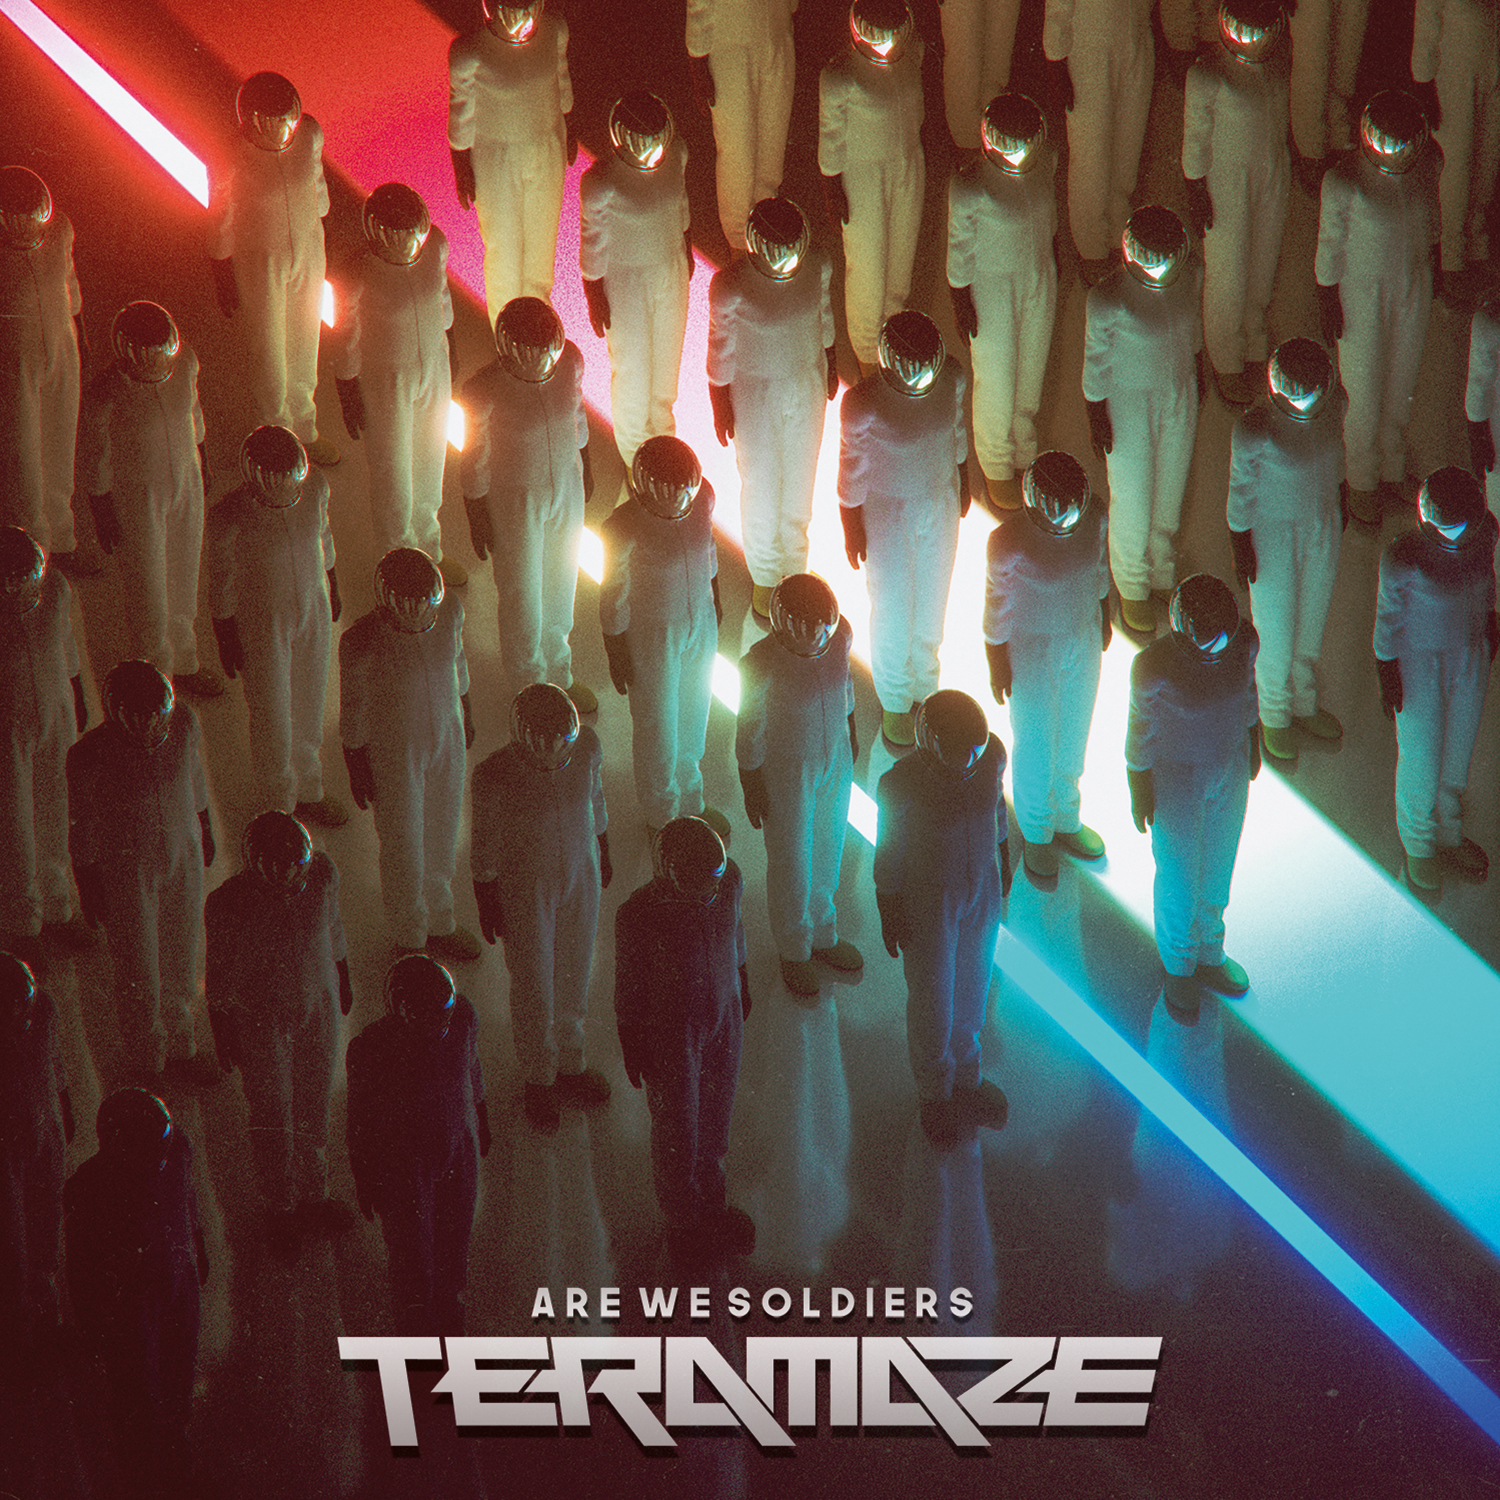 Teramaze – Are We Soldiers